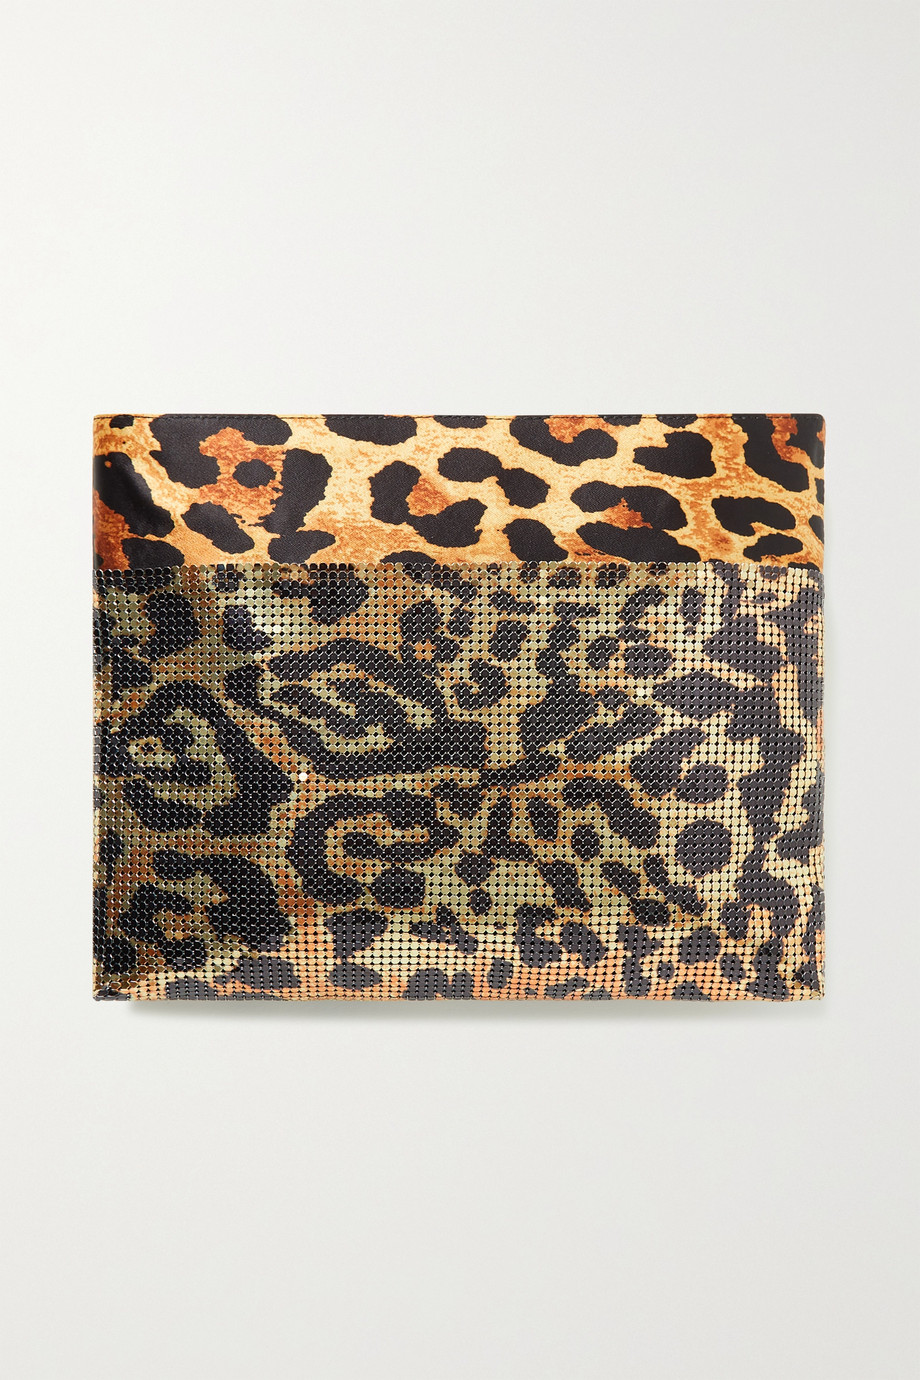 PACO RABANNE Pixel leopard-print satin and chainmail clutch